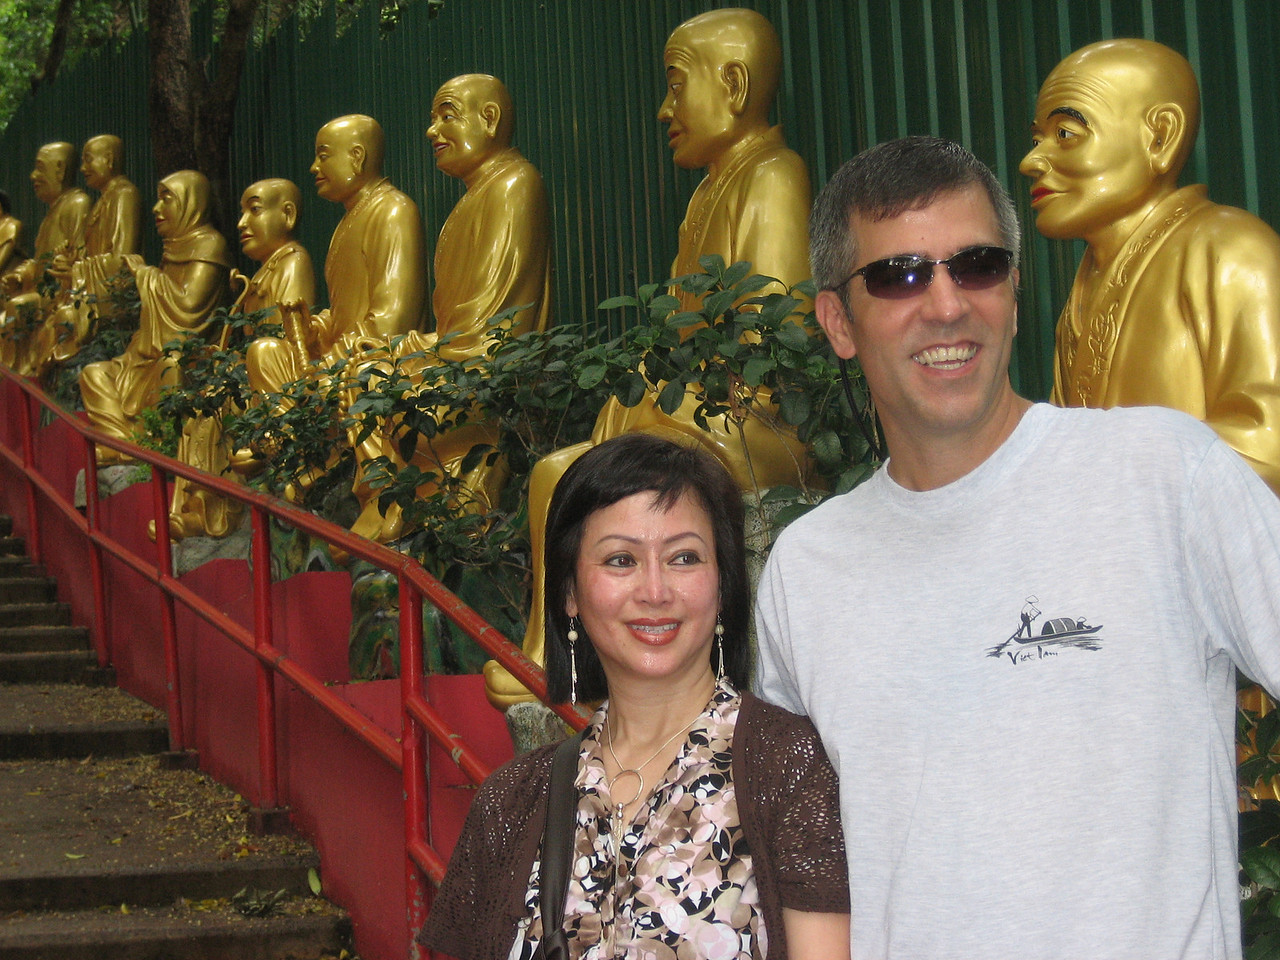 Friends from Boise (HK residents), Nancy & Gregg, our local tour guides!